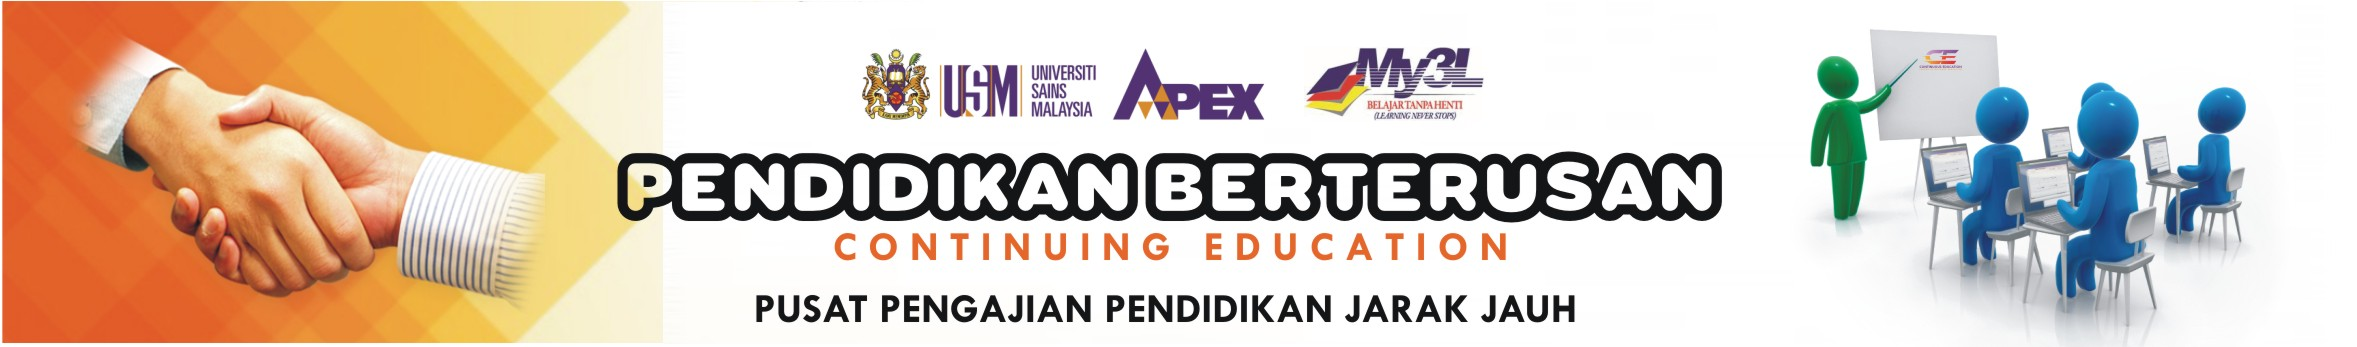 Pppjj continuing education the 3rd shift of malaysian education blueprint 2015 2025 higher education valueing lifelong education malvernweather Image collections